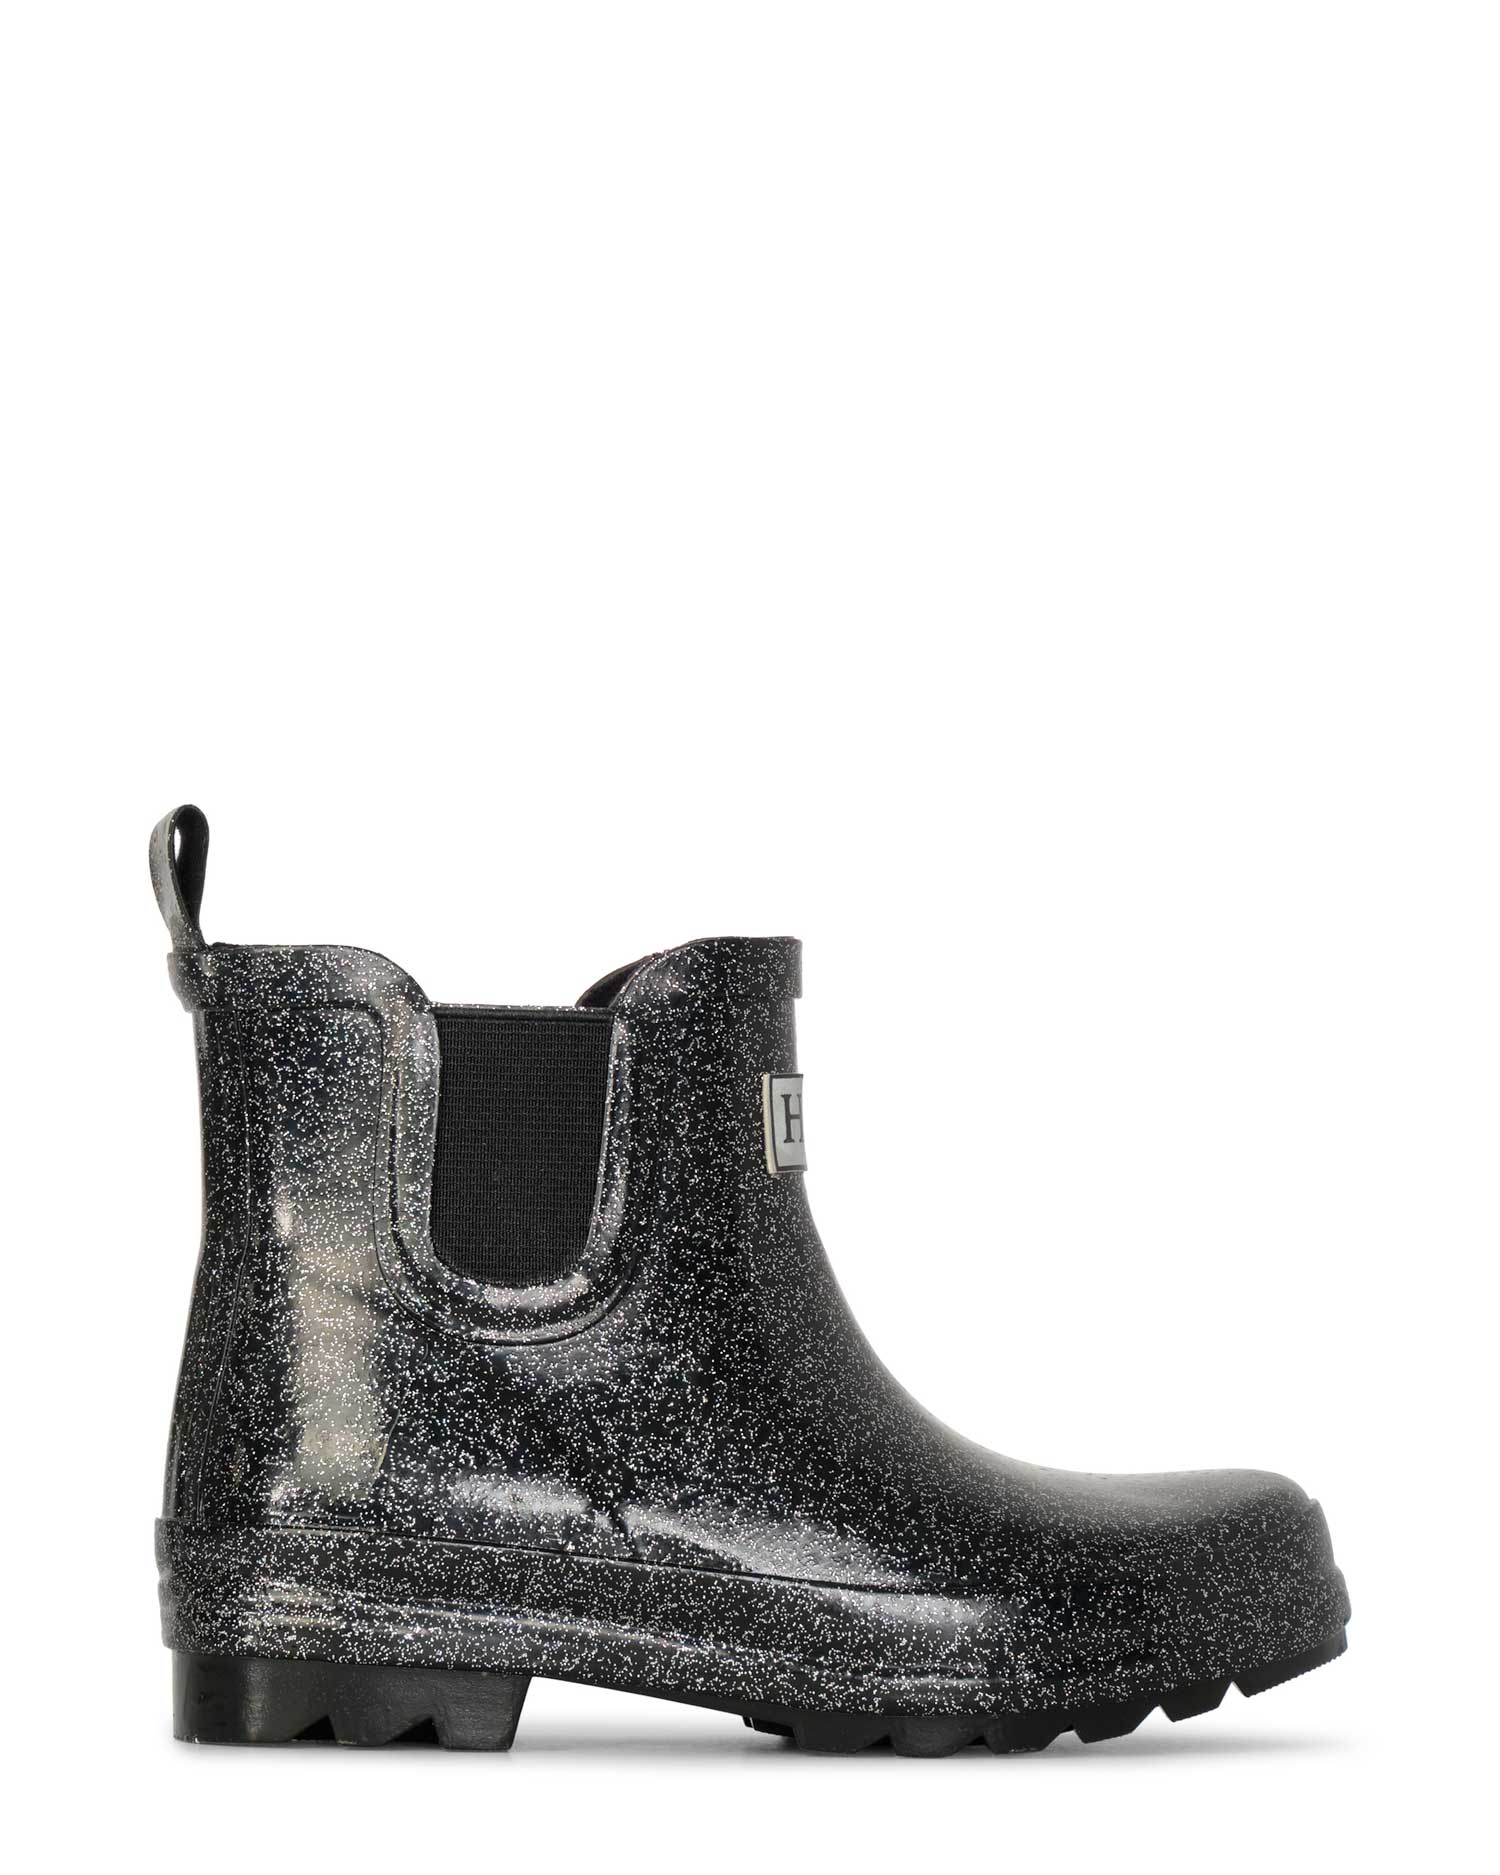 Starry Night Glitter Ankle Gumboots